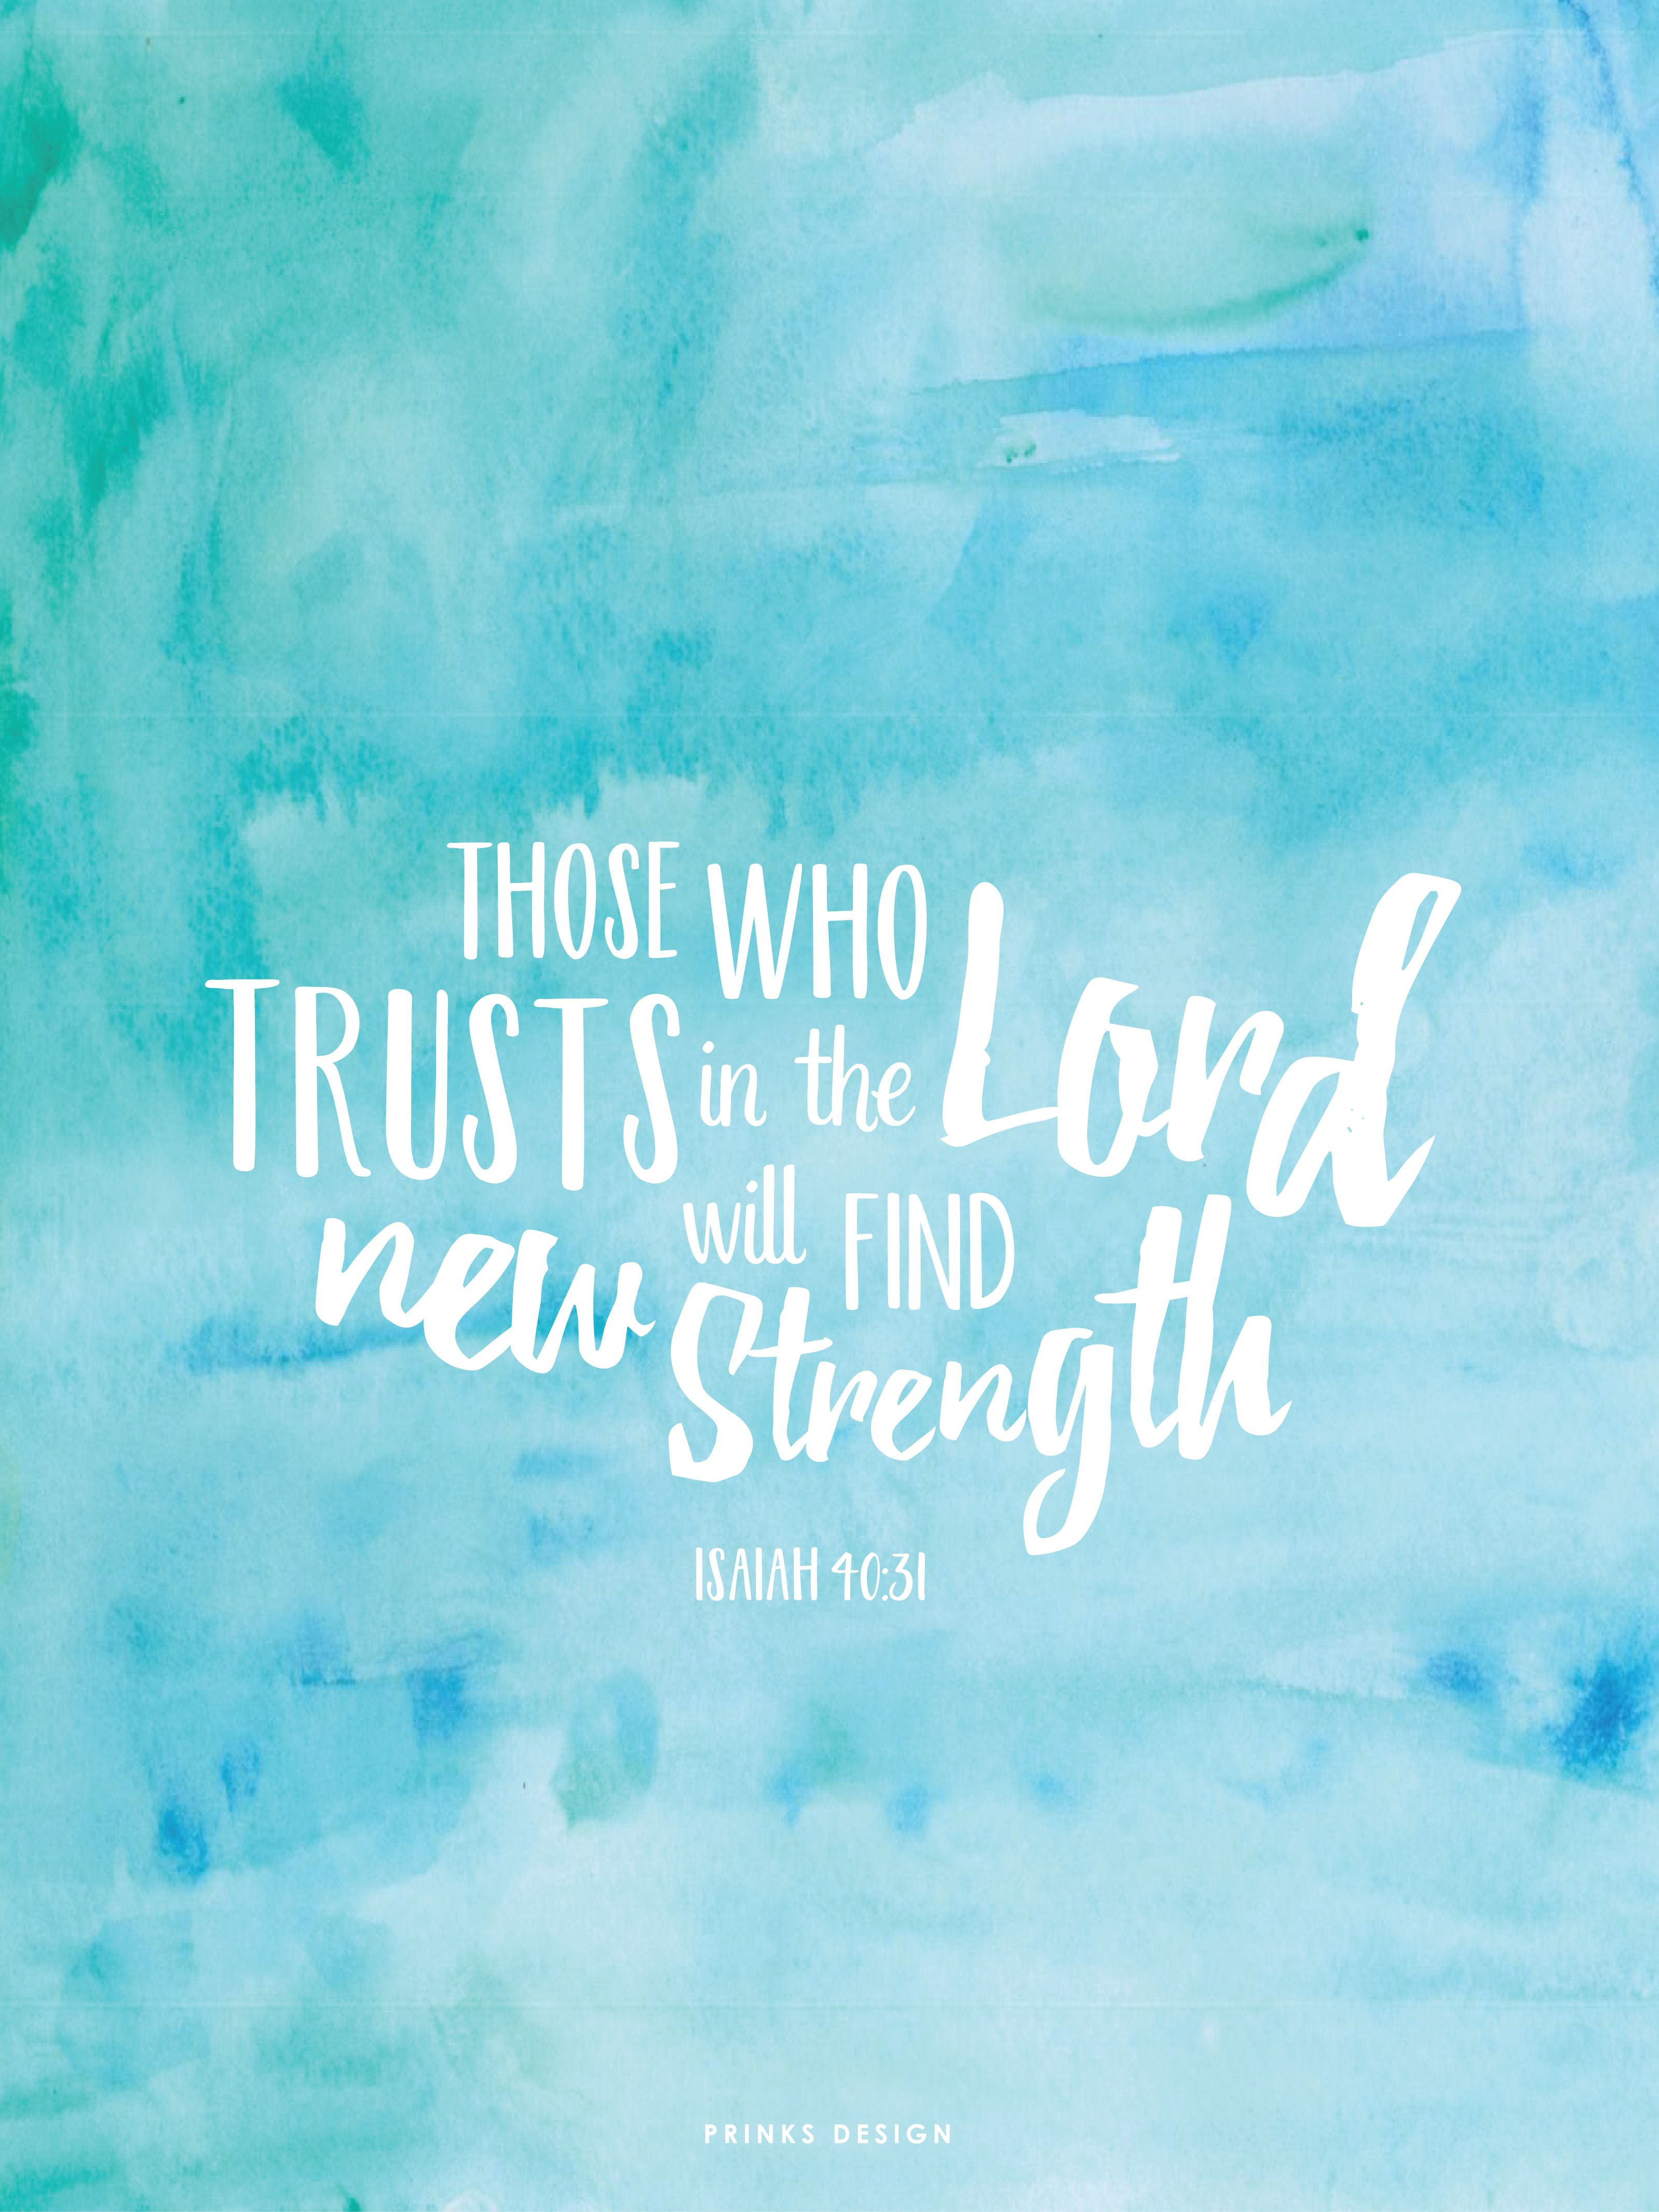 Freebiesfriday bible verse book of isaiah strength freebiesfriday bible verse book of isaiah strength typography watercolour wallpaper voltagebd Choice Image